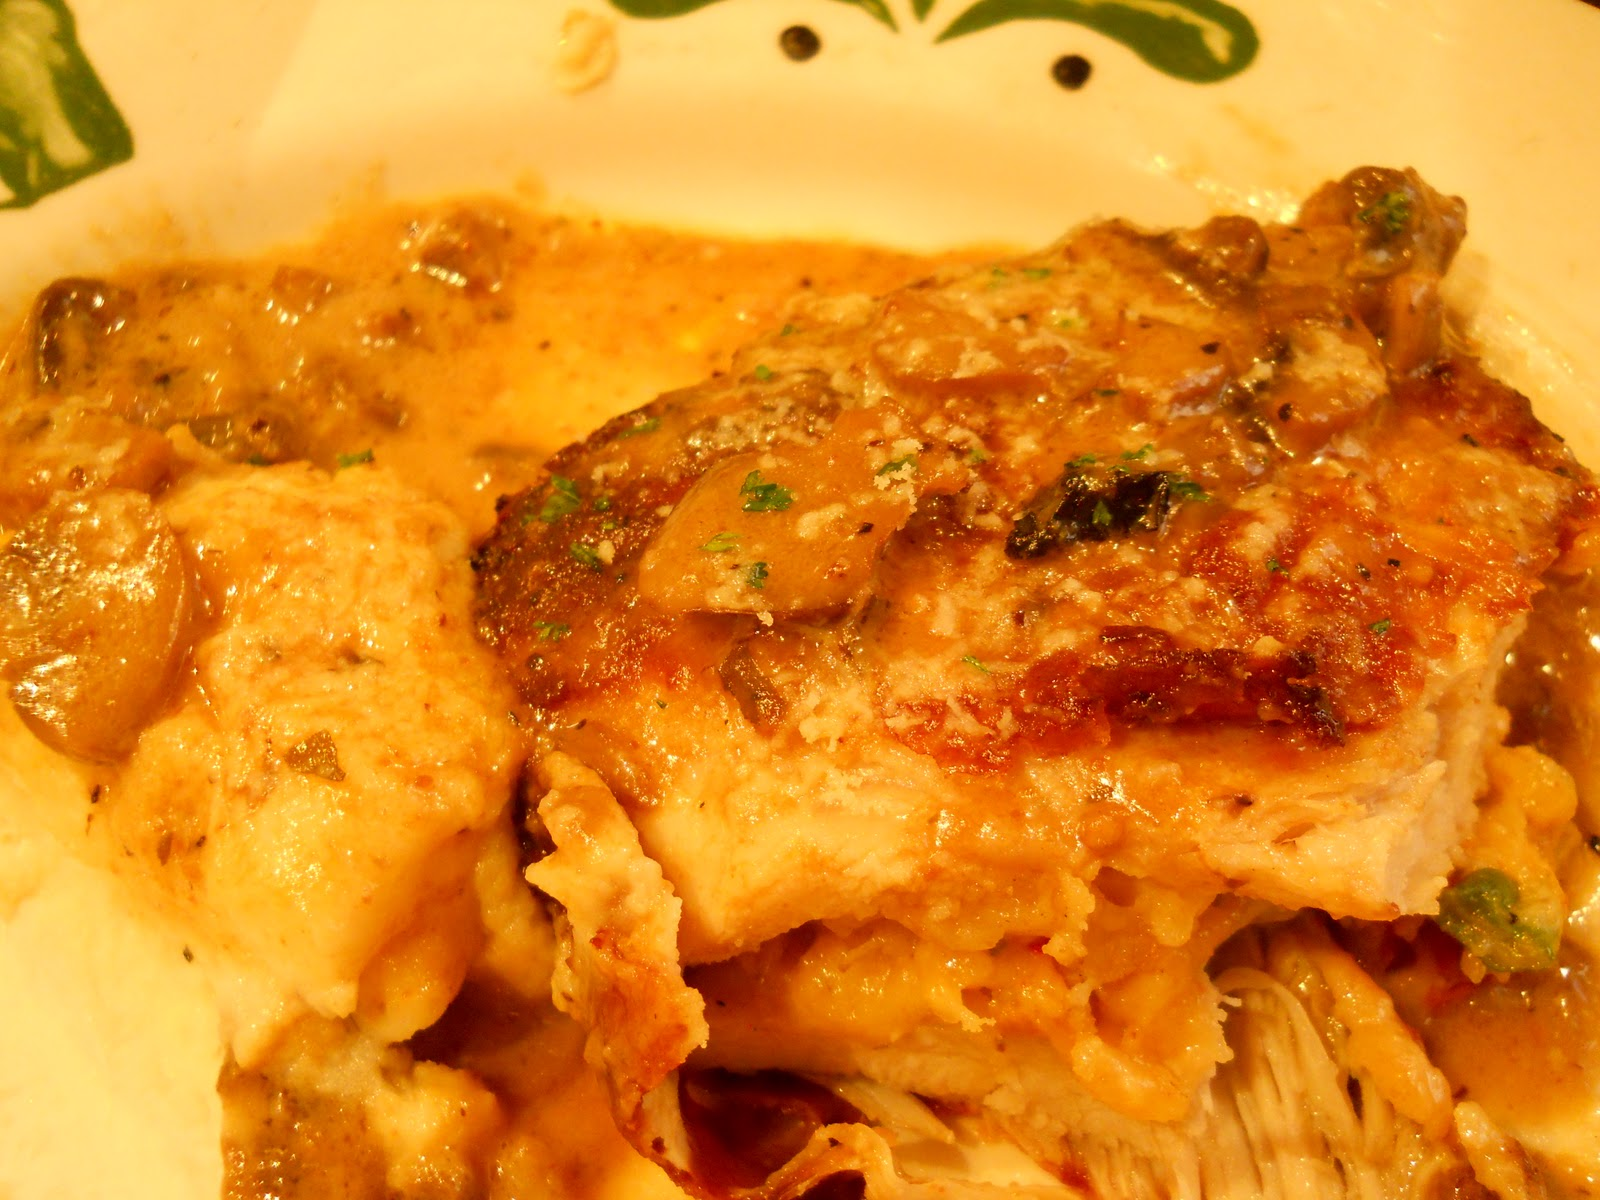 Oddball observations a visit to olive garden for Olive garden stuffed chicken marsala